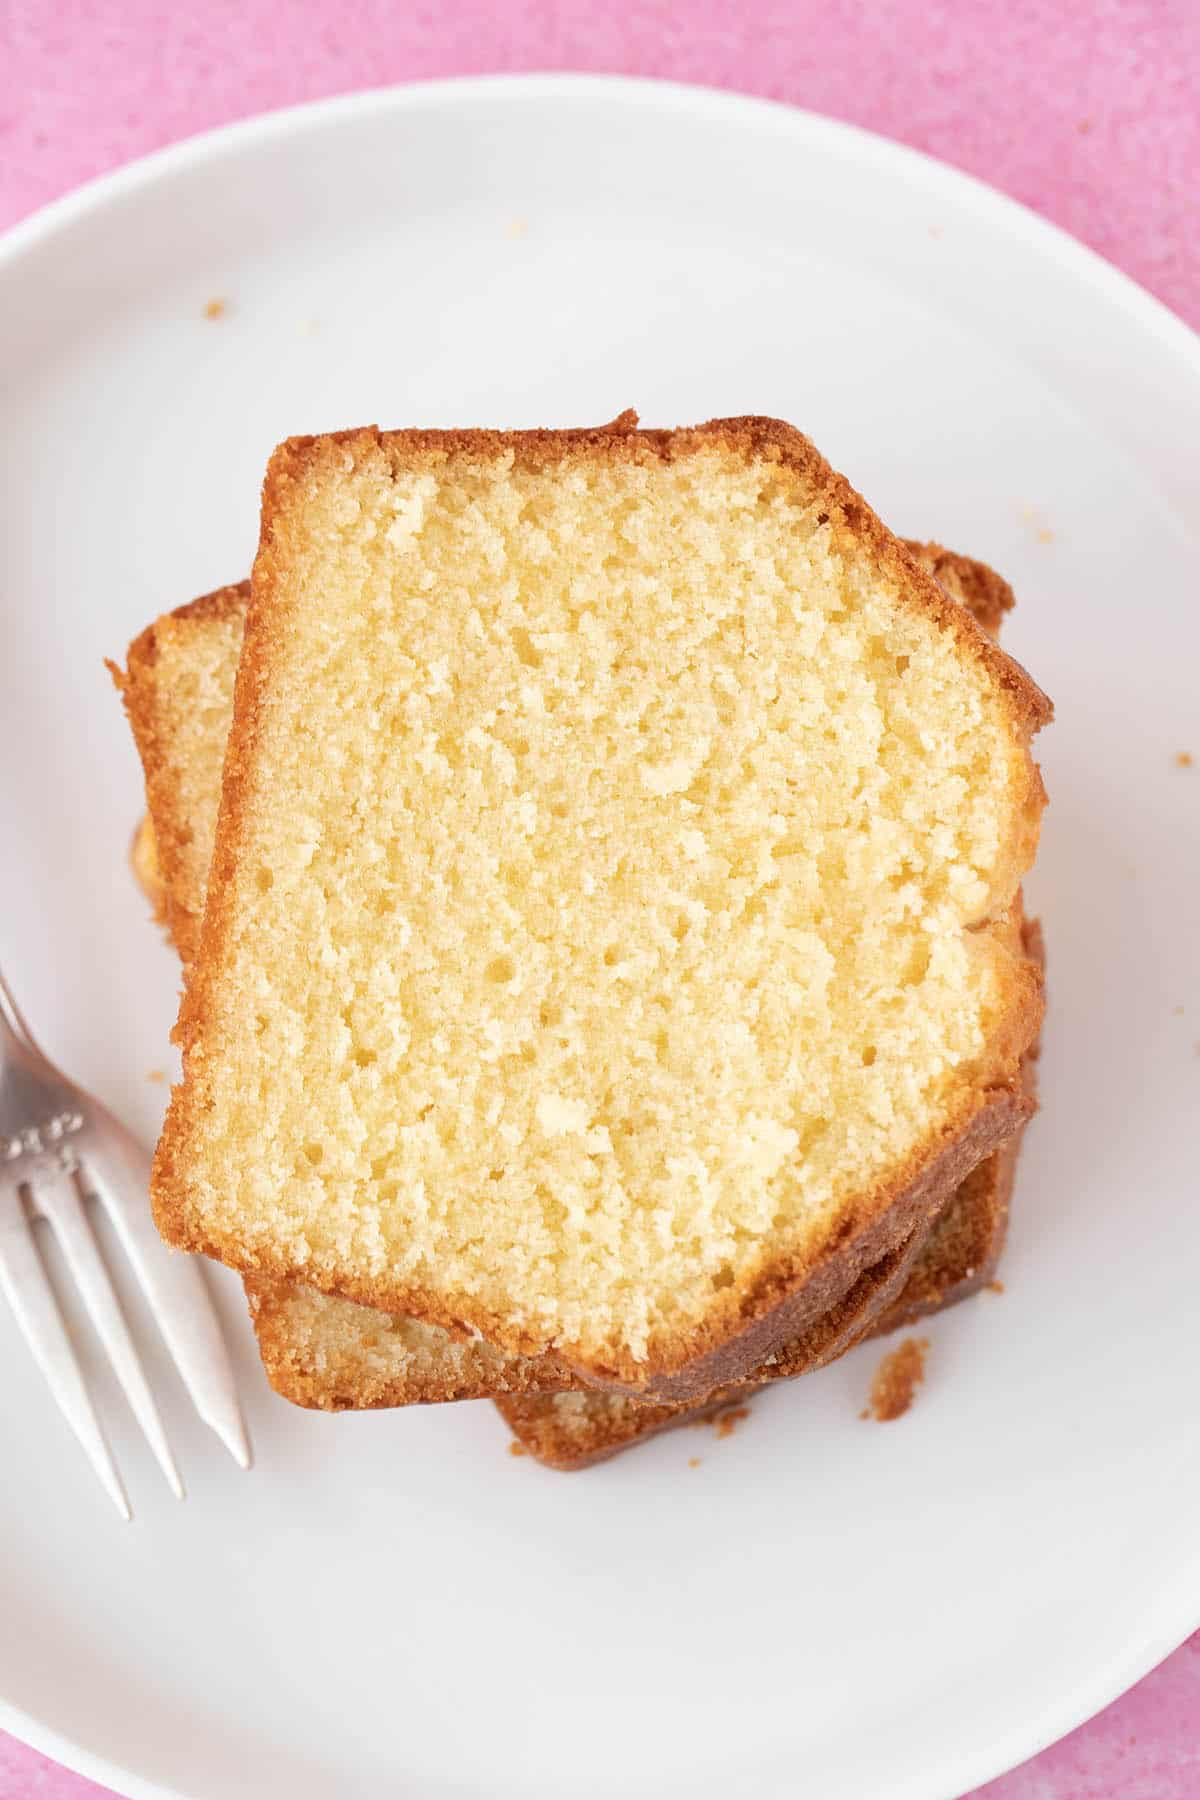 Top view of a slice of Pound Cake on a white plate